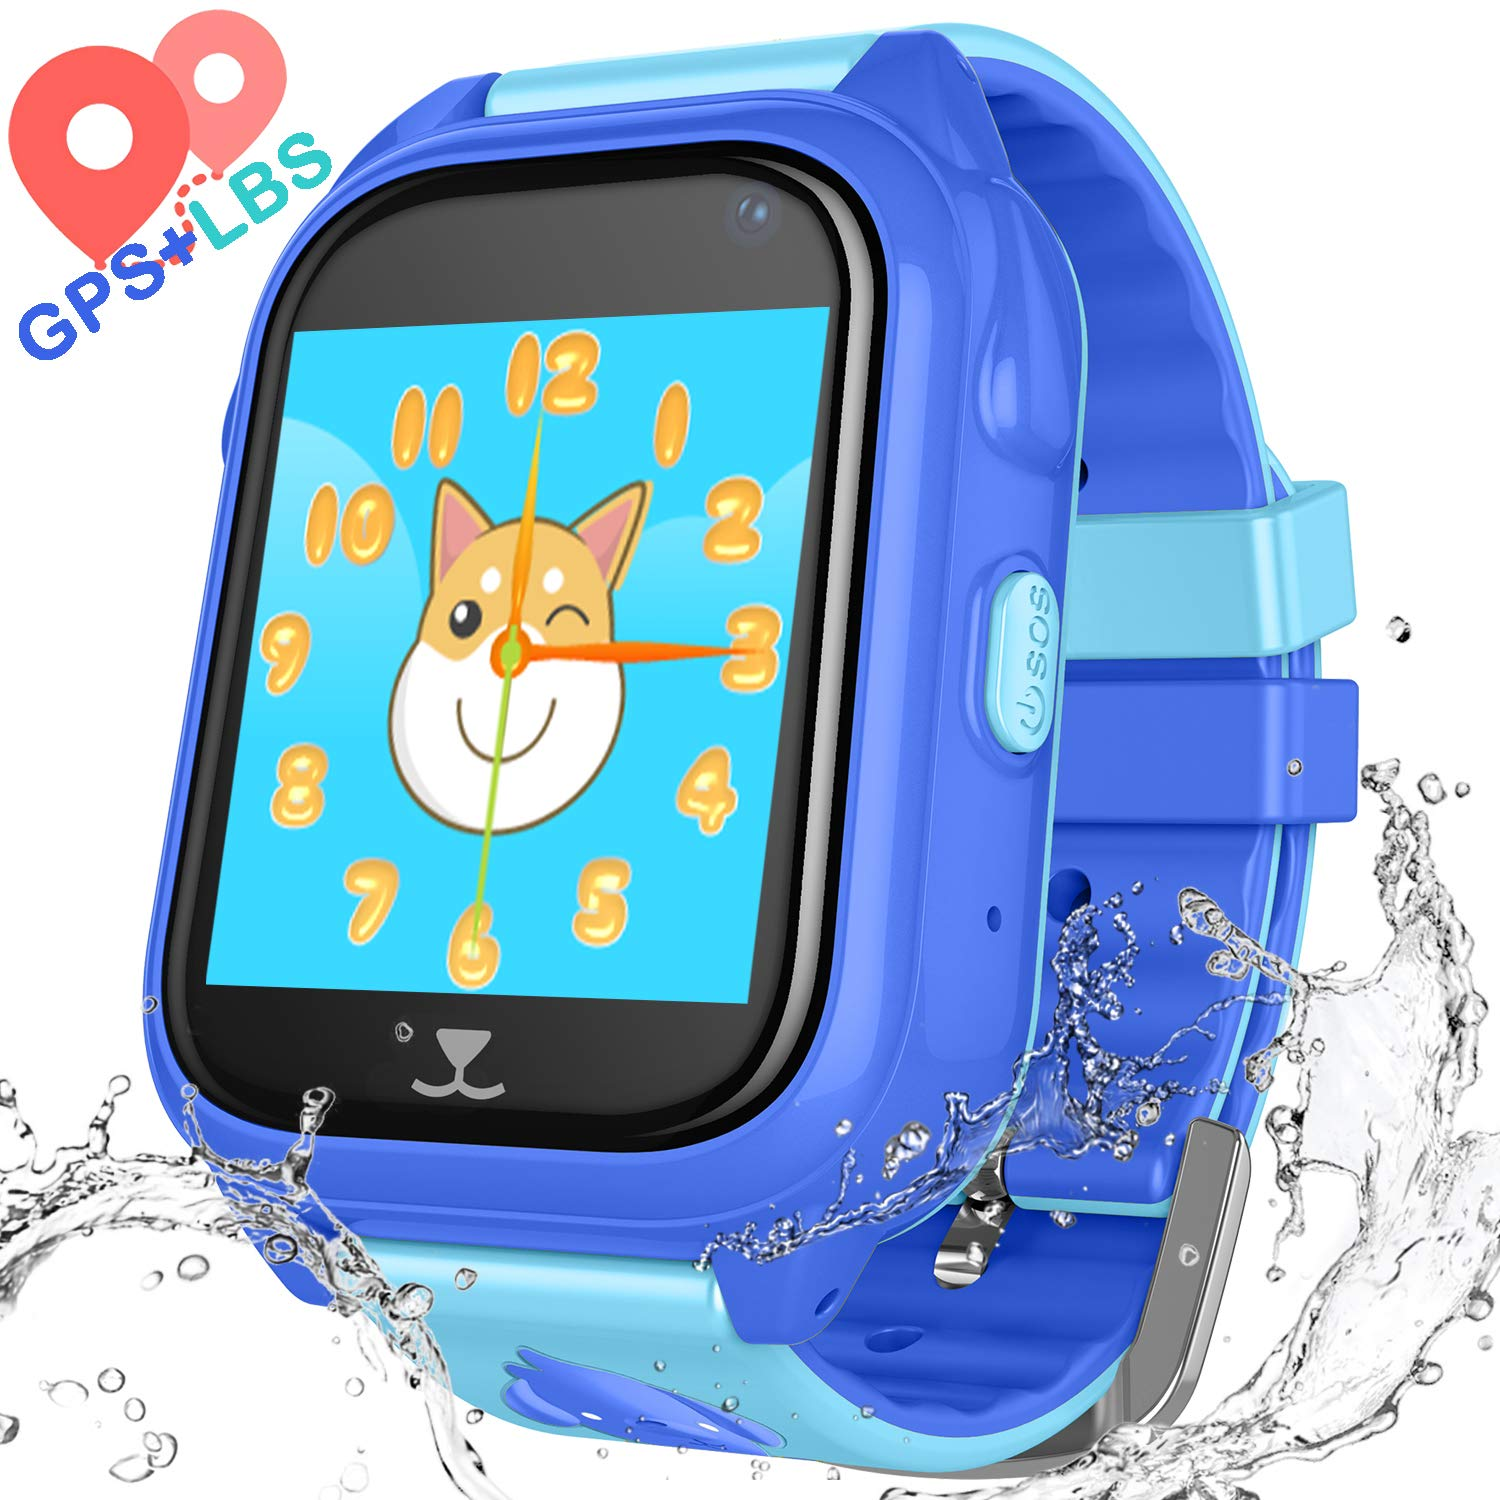 YENISEY Kids Waterproof Smart Watch Phone - Children Water Resistant GPS Tracker Watch with Call Talkie Walkie Games Sports Wristband for Boys Girls